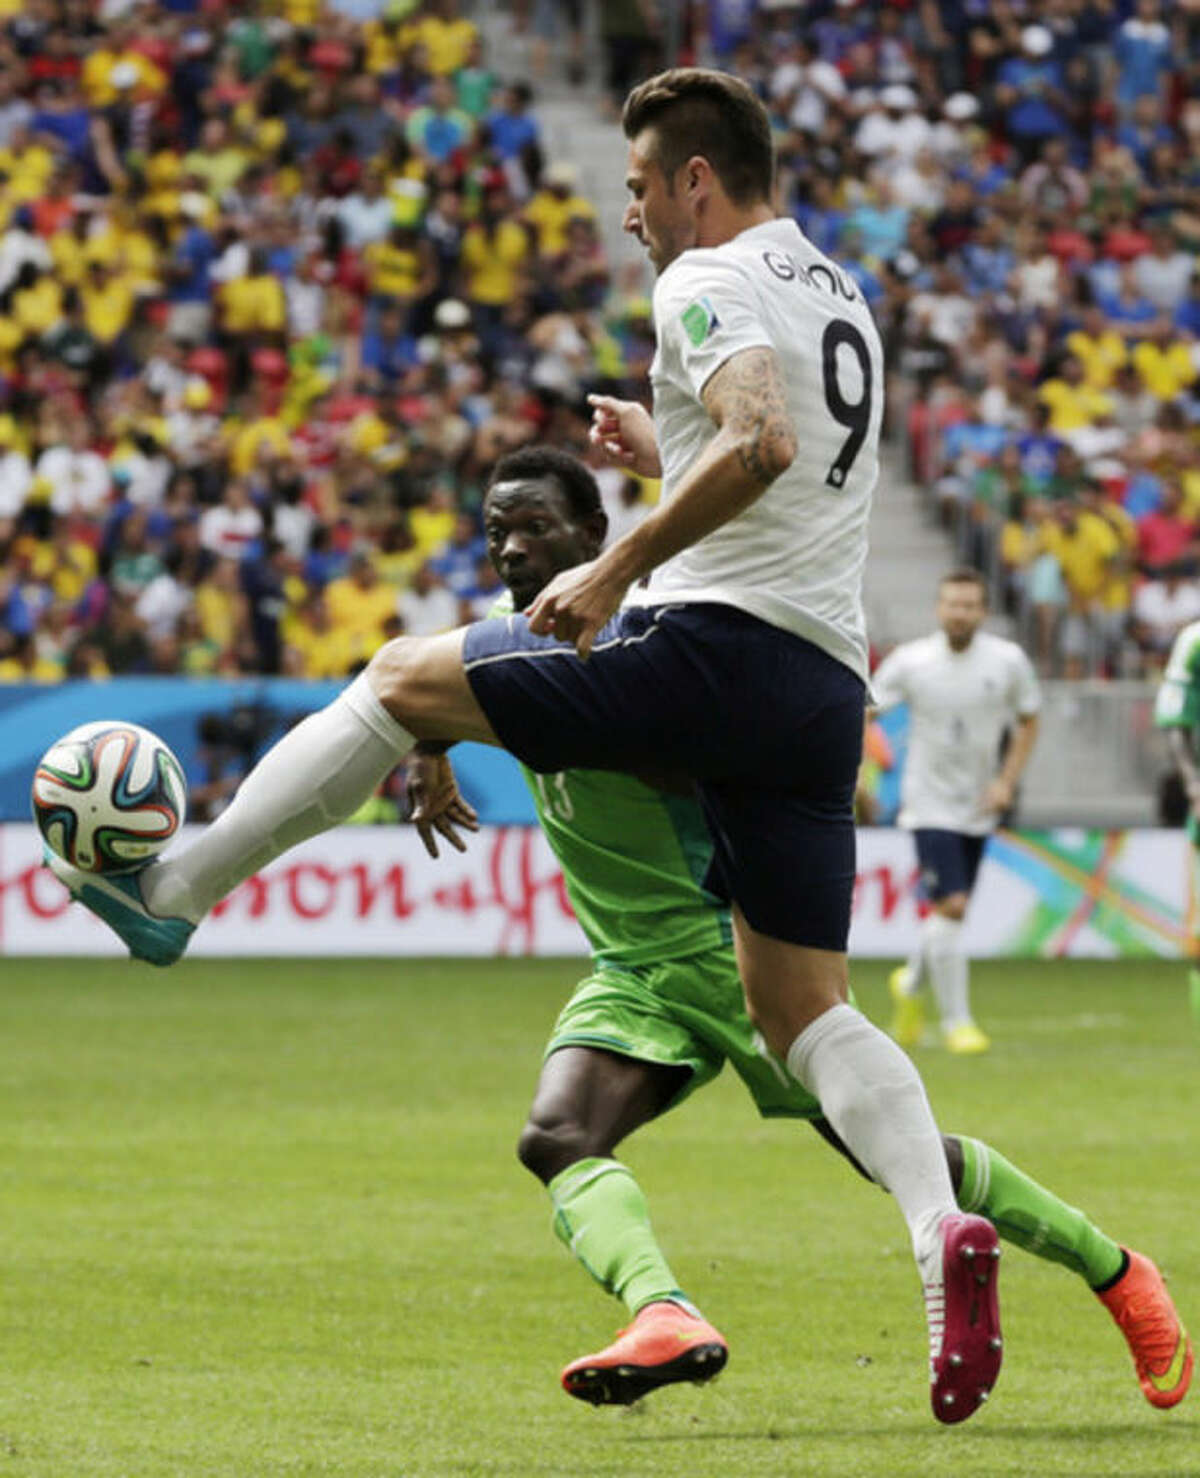 France's Olivier Giroud, right, clears the ball ahead of Nigeria's Juwon Oshaniwa during the World Cup round of 16 soccer match between France and Nigeria at the Estadio Nacional in Brasilia, Brazil, Monday, June 30, 2014. (AP Photo/Petr David Josek)